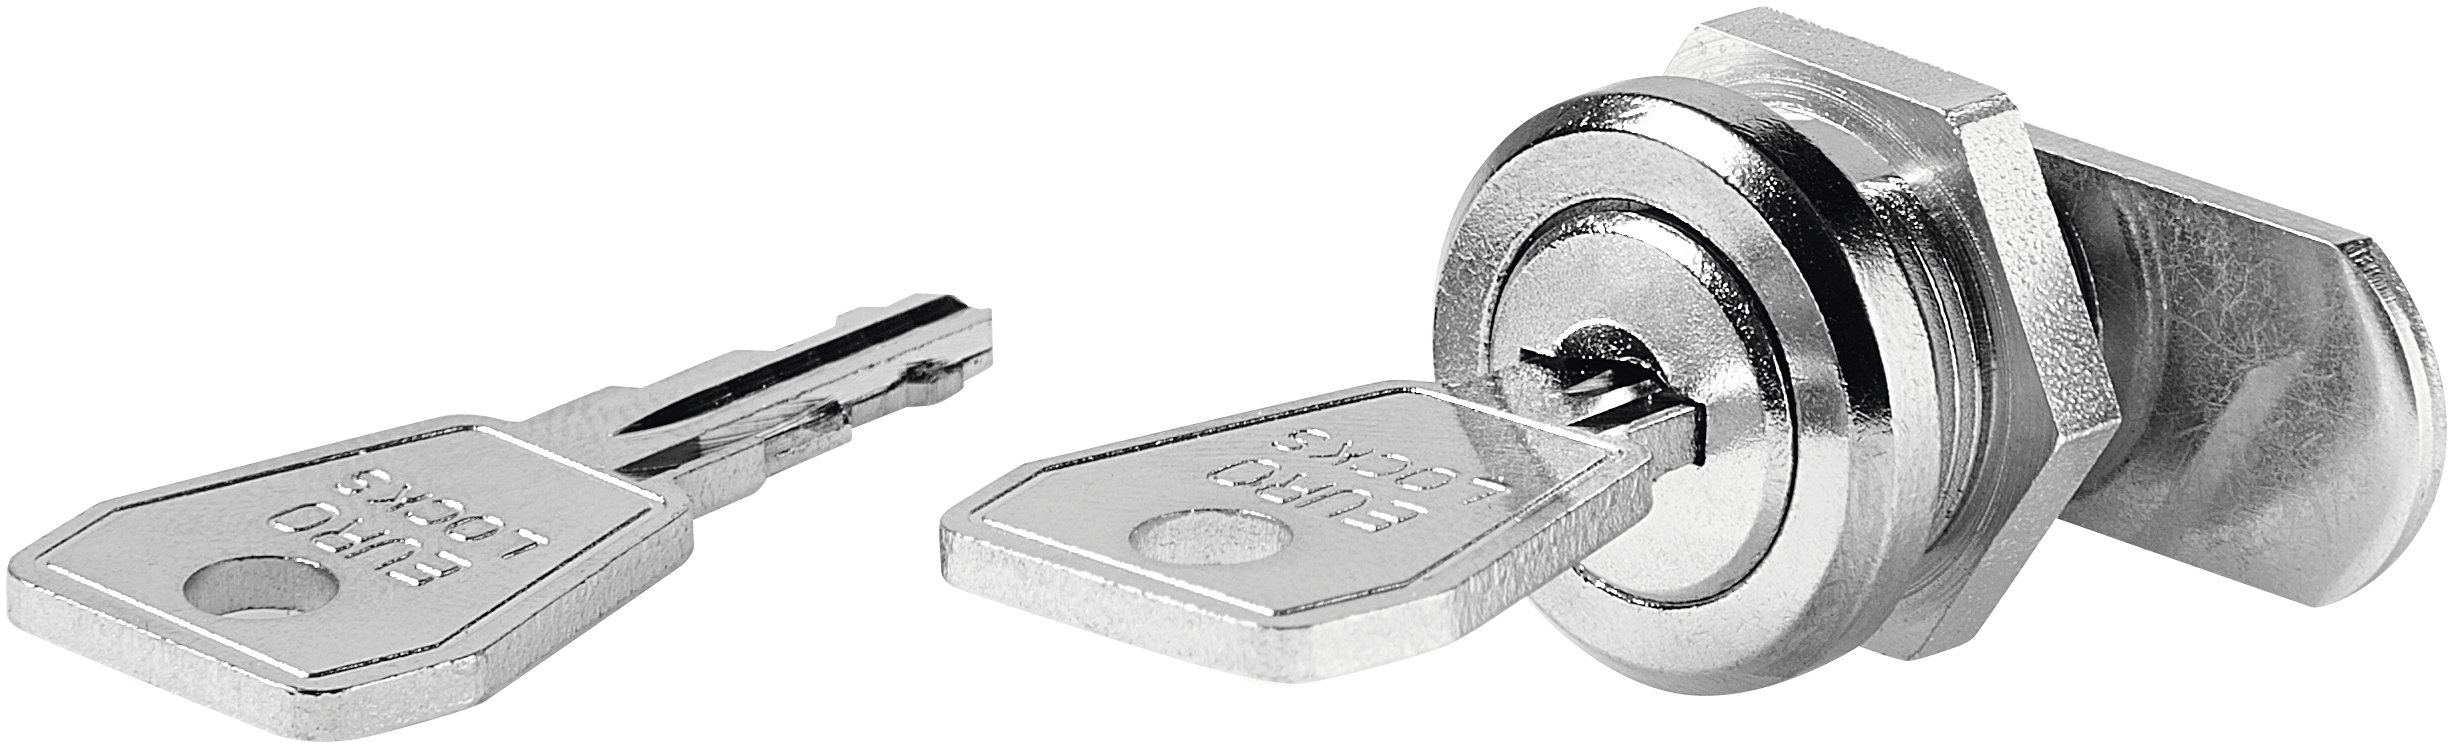 Festool 500693 Lock and Key for Sys-AZ Drawer, 1-Pack